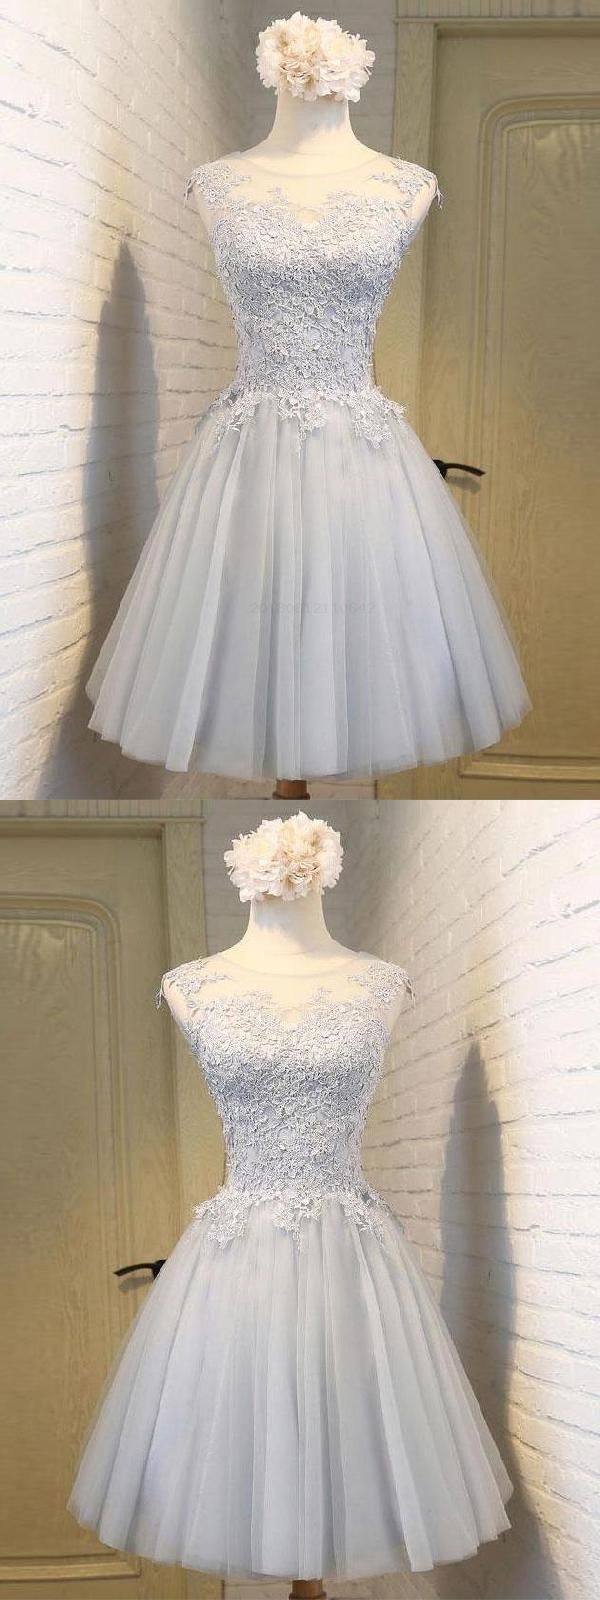 Glorious short aline modest homecomingprom dresses pinterest